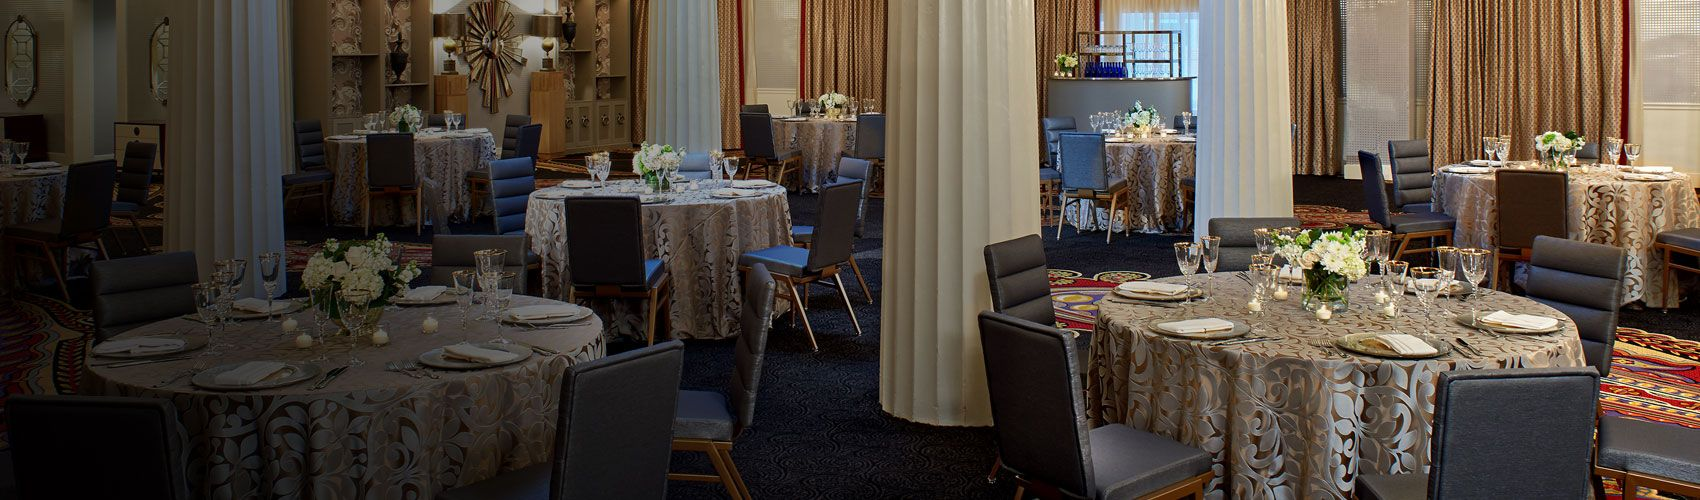 Washington Dc Wedding Venues Kimpton Weddings